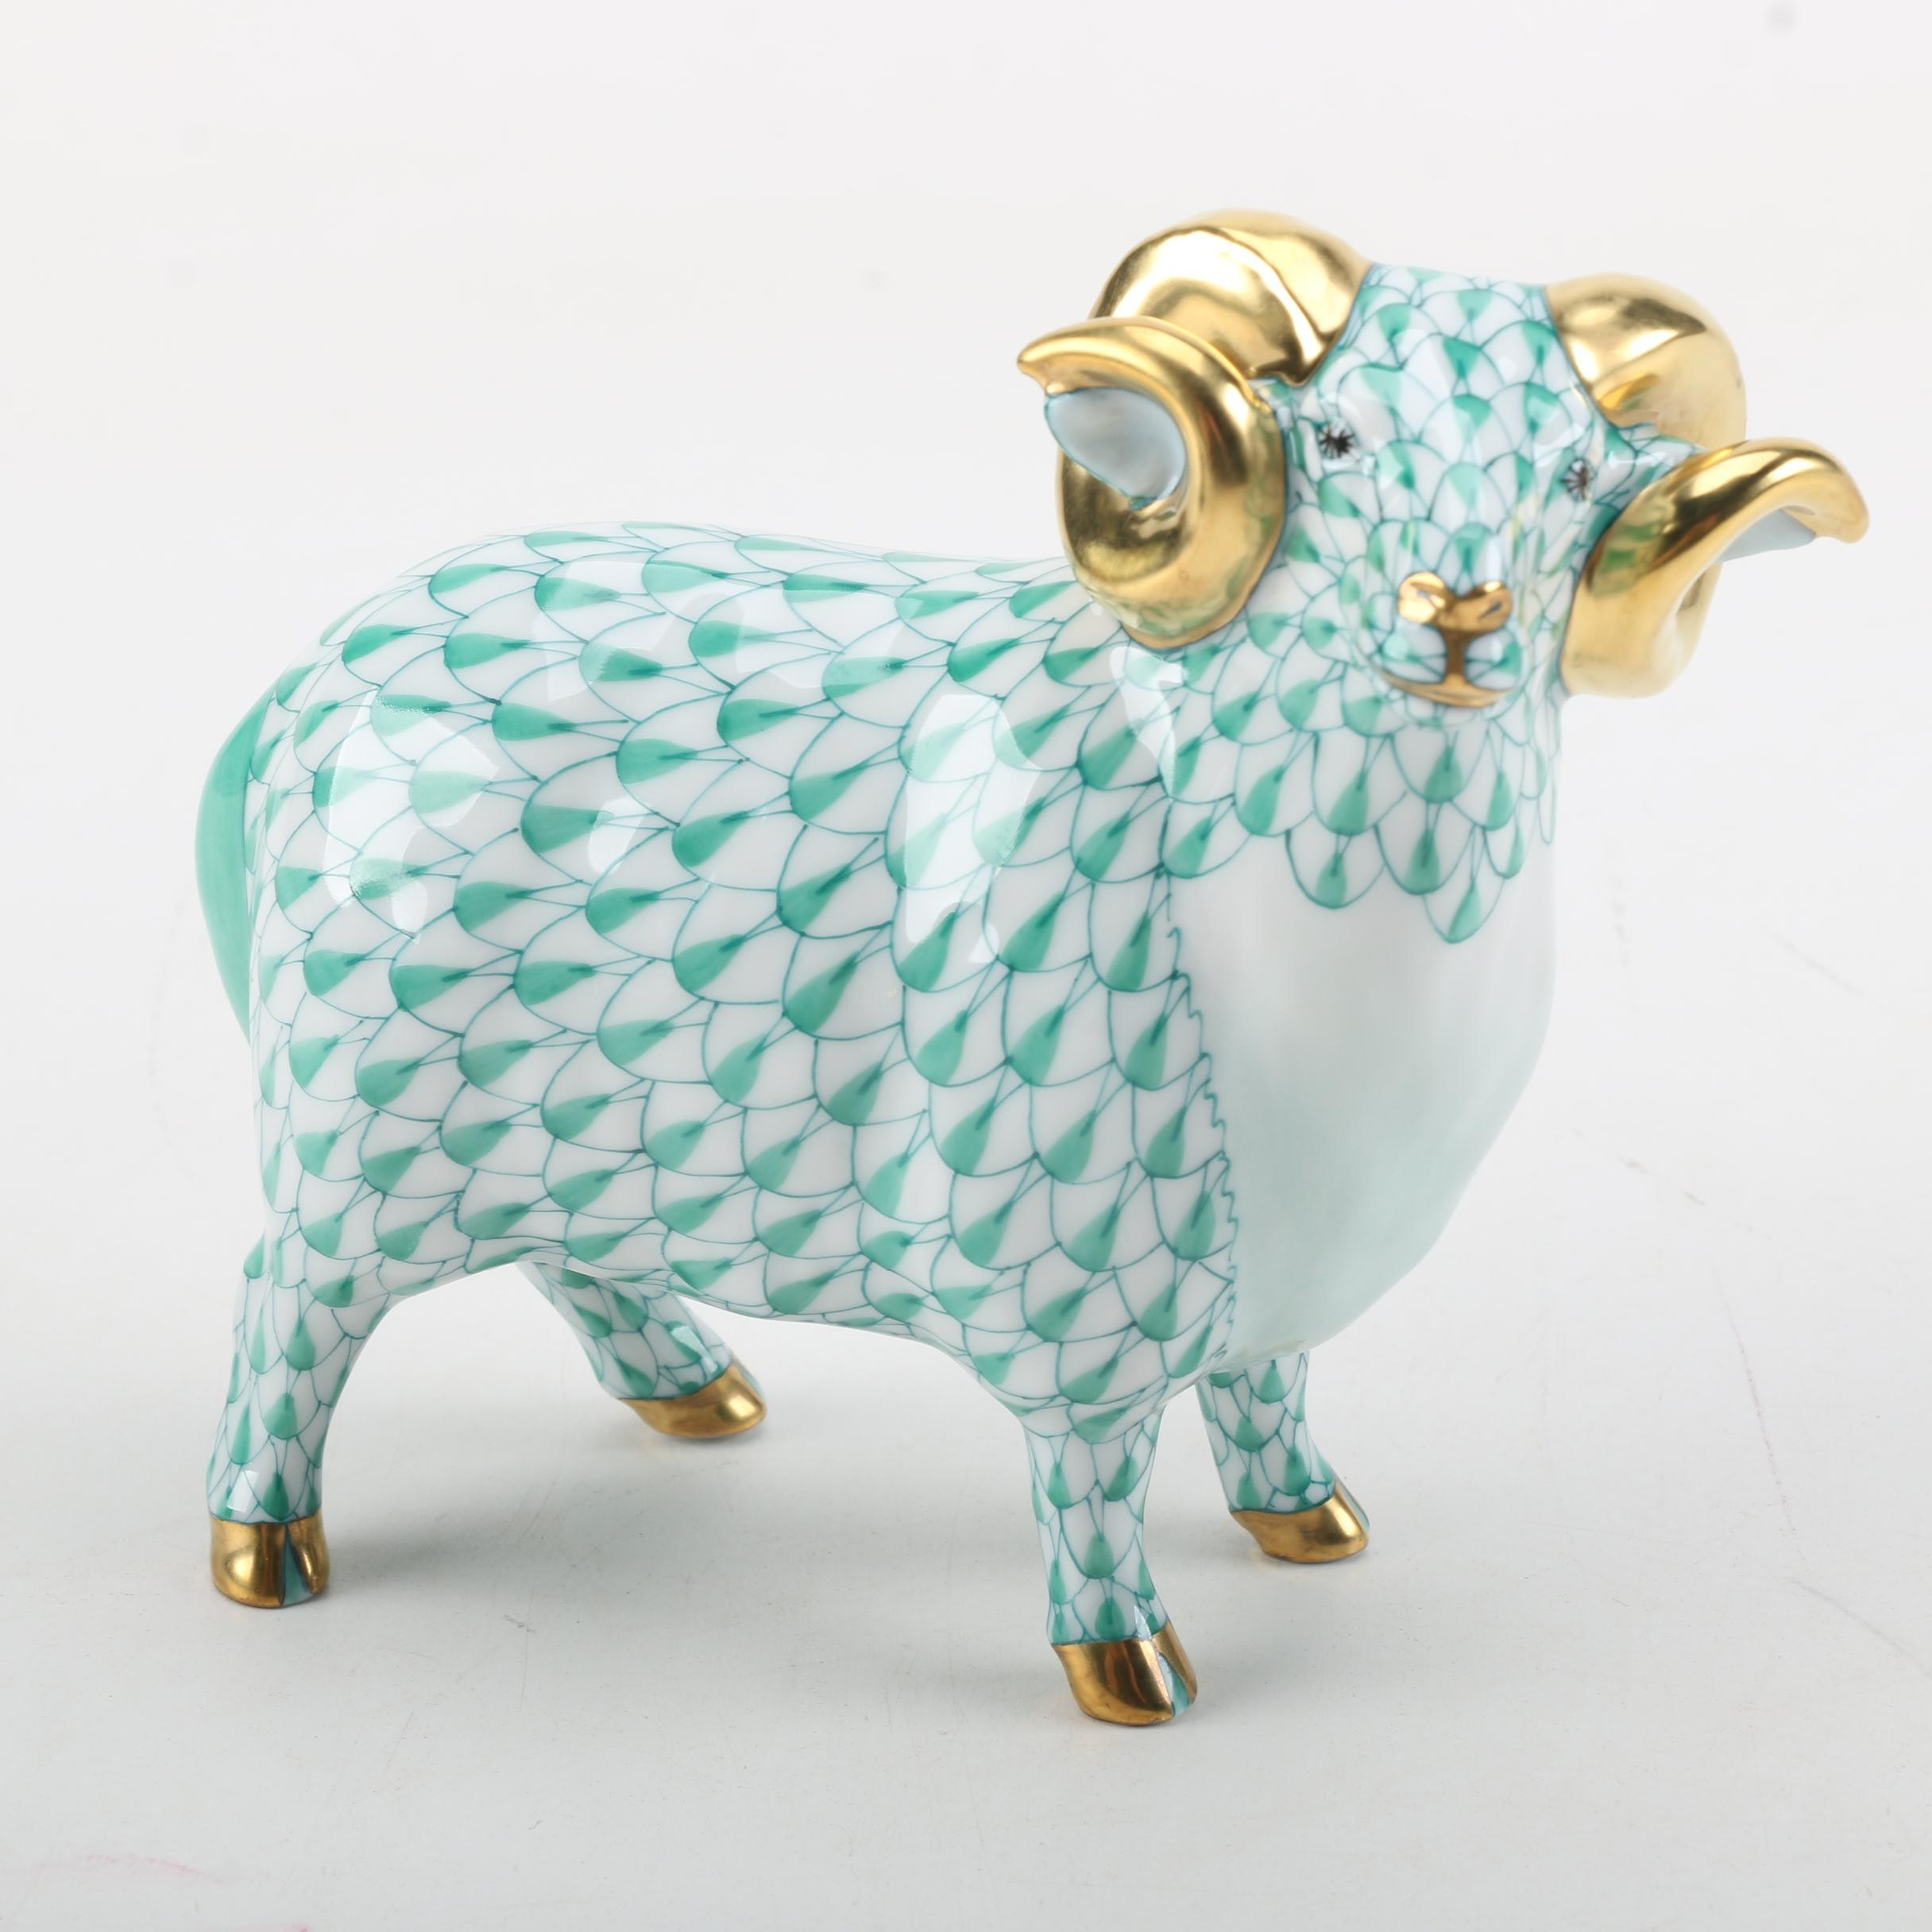 Herend Handmade and Hand-Painted Green Porcelain Ram Figurine with 24K Gold